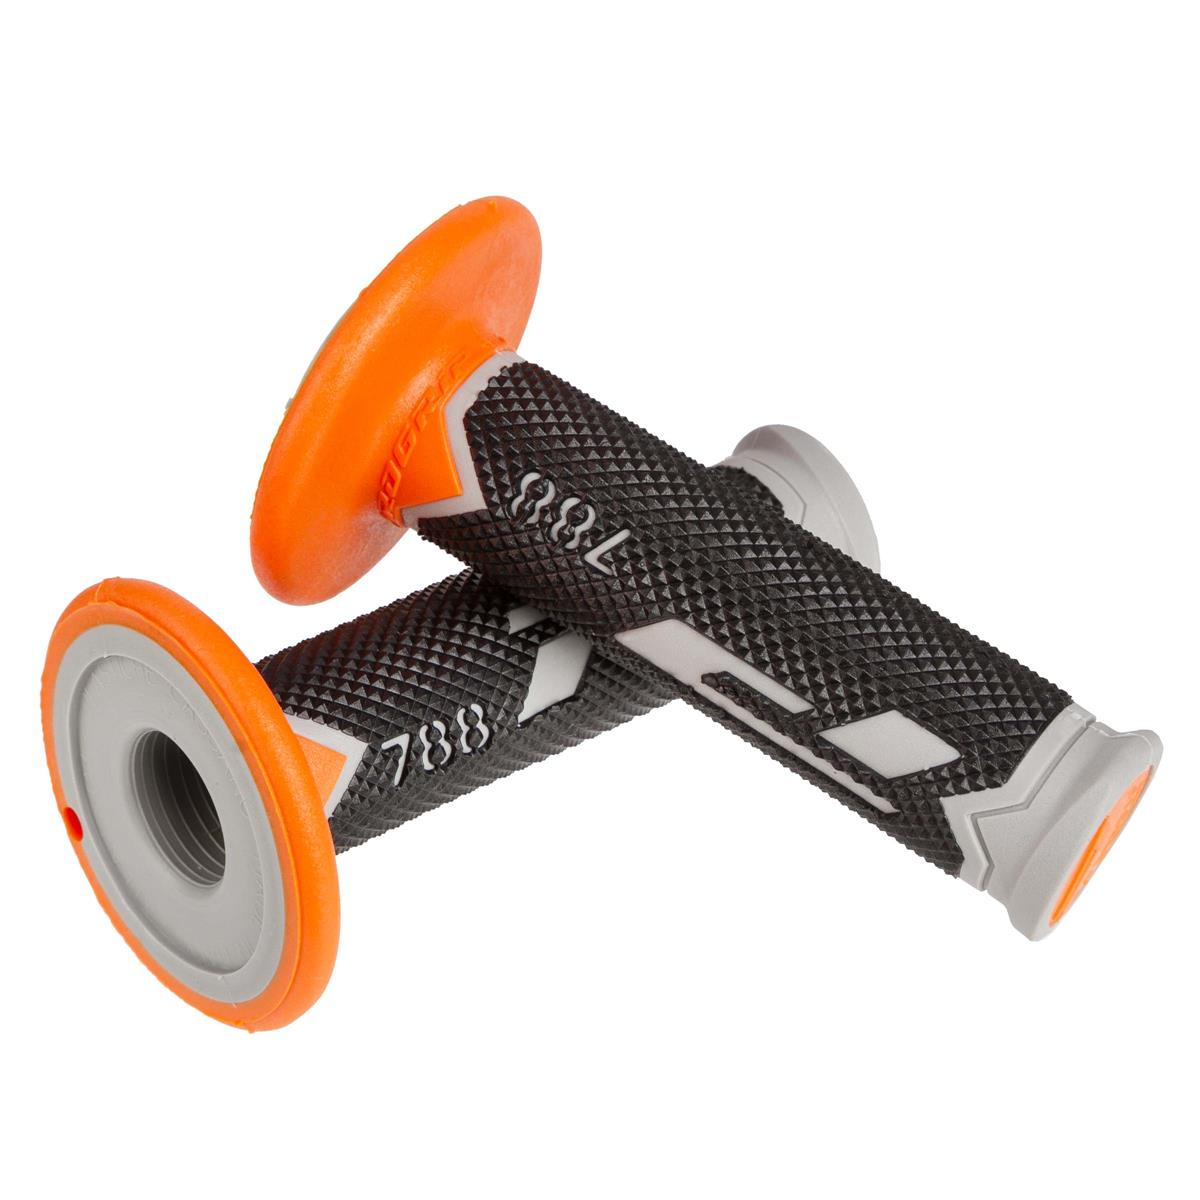 ProGrip Griffe Triple Density Grey Base 788 Grau/Schwarz/Orange